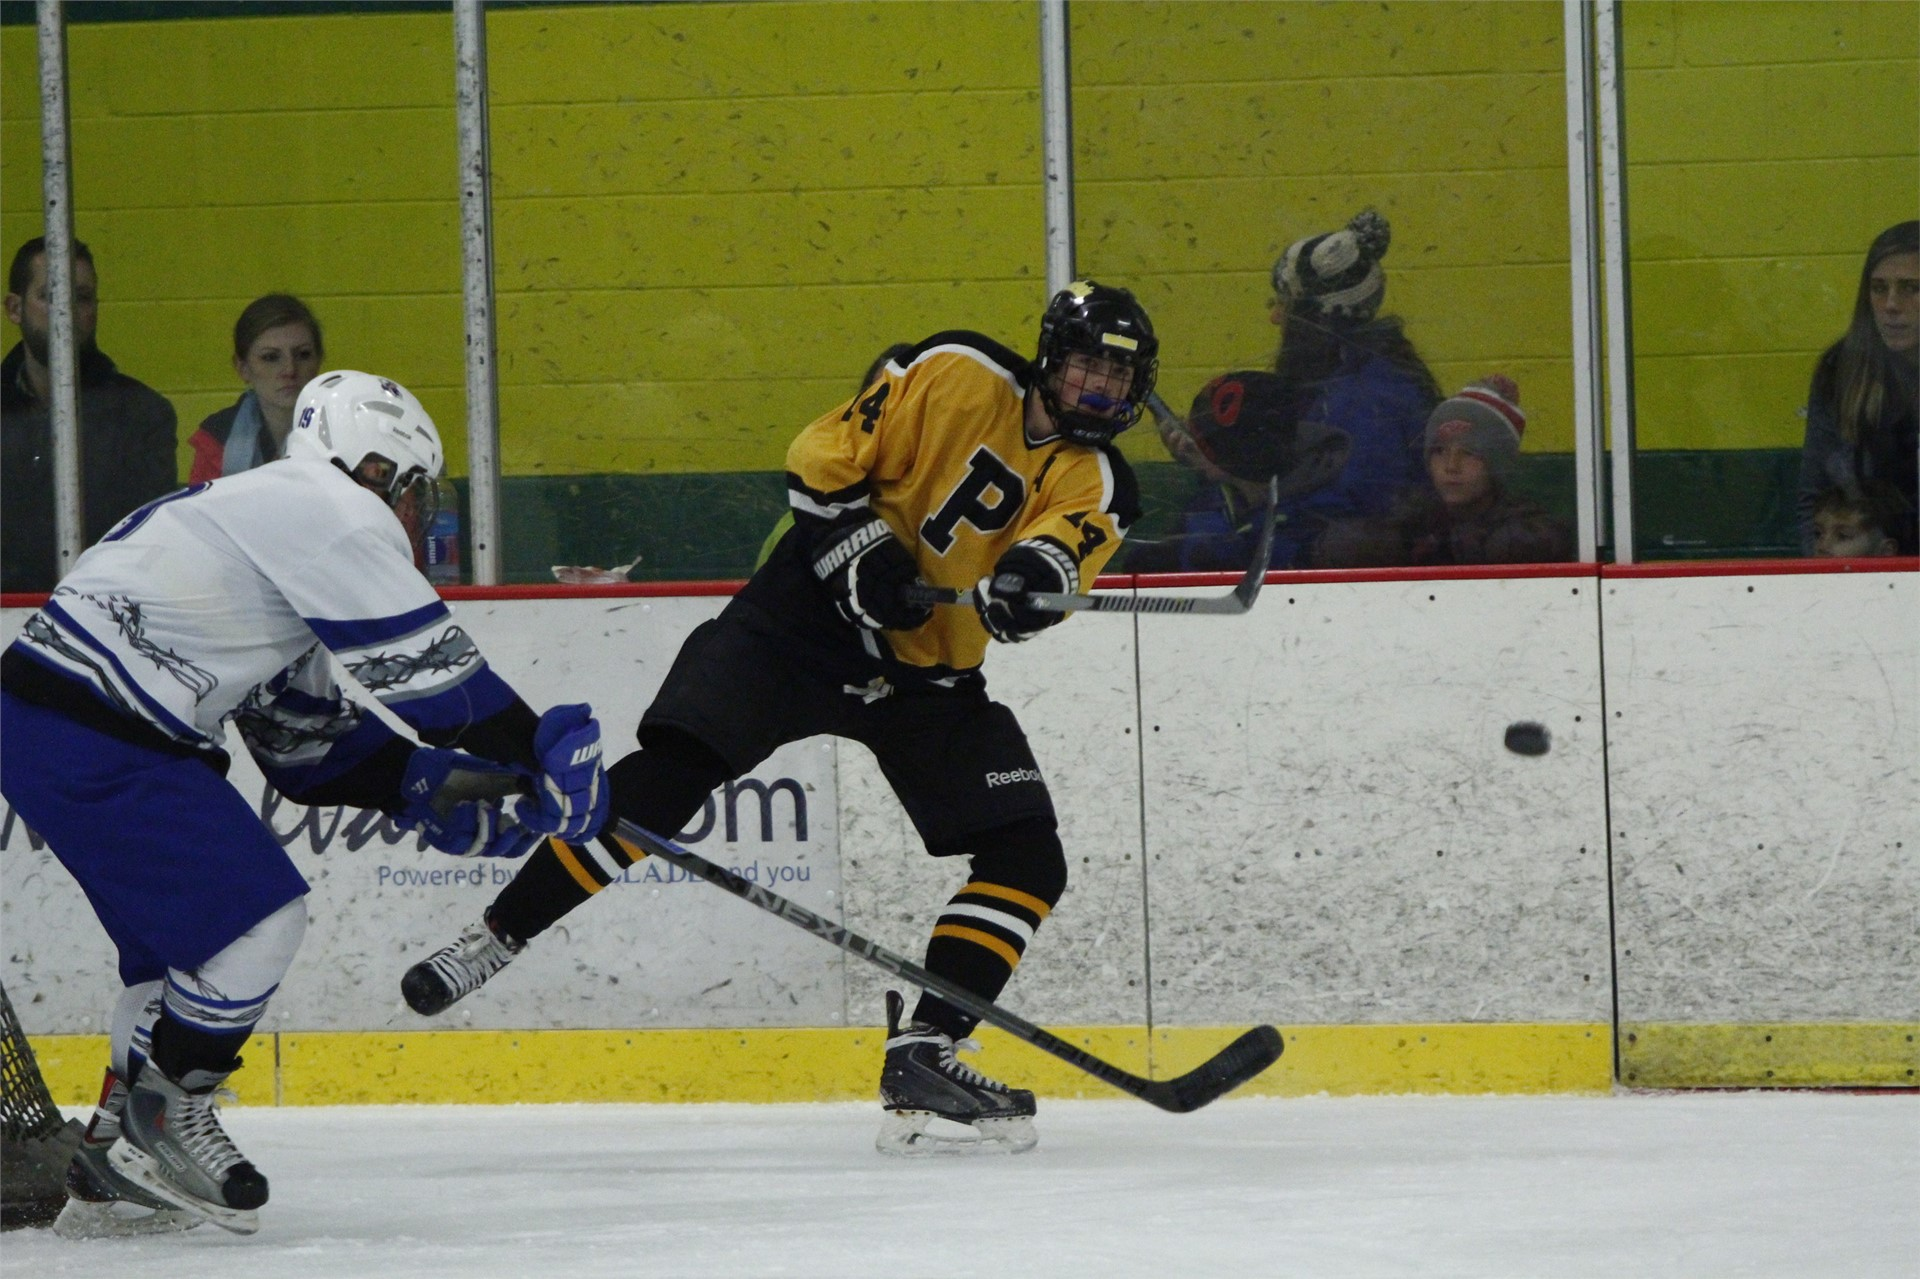 PHS student athlete shooting a puck